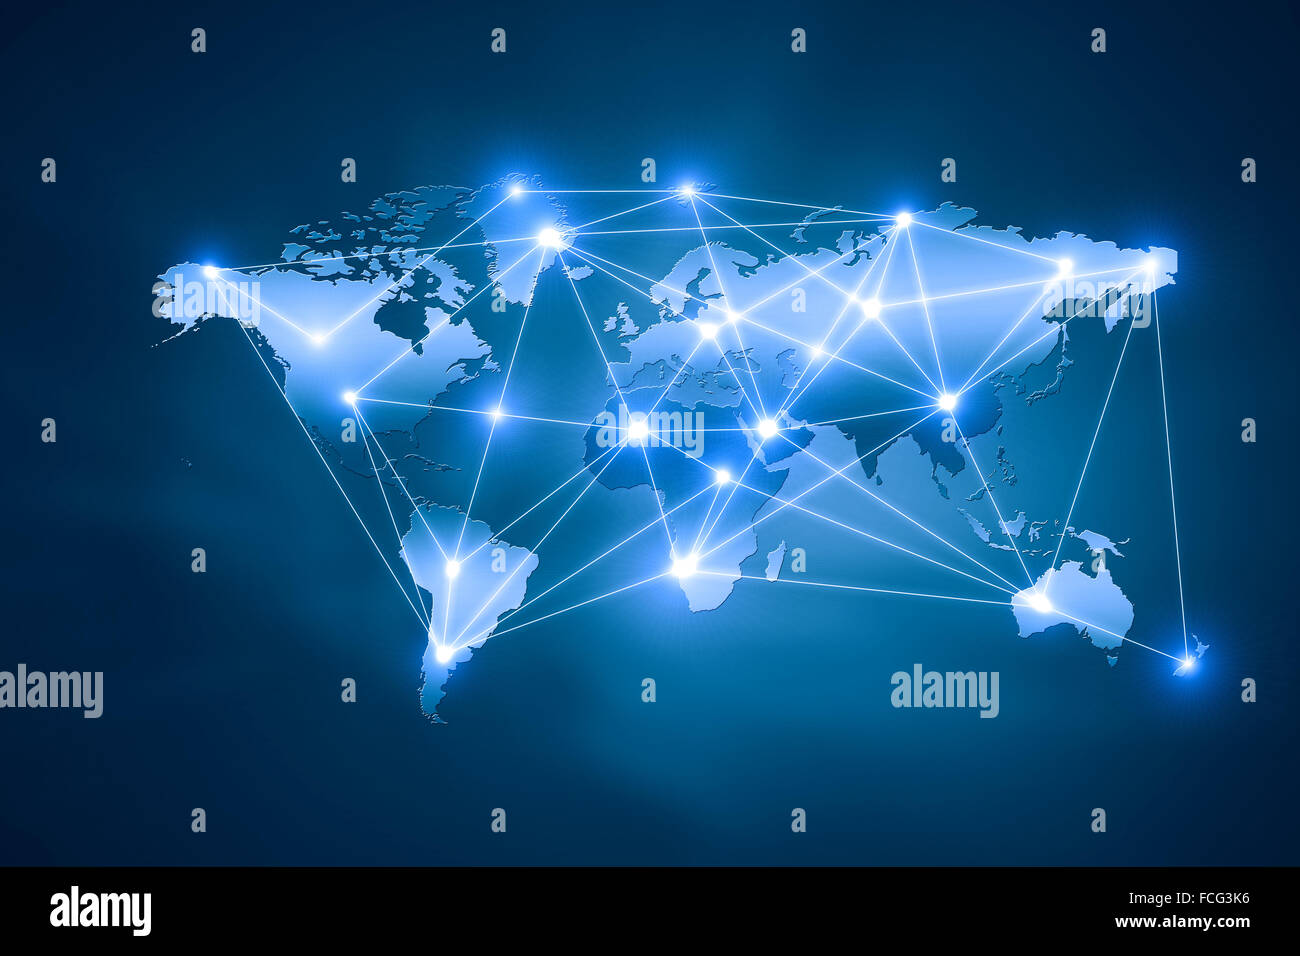 Background digital image of world map with connection lines stock background digital image of world map with connection lines gumiabroncs Gallery